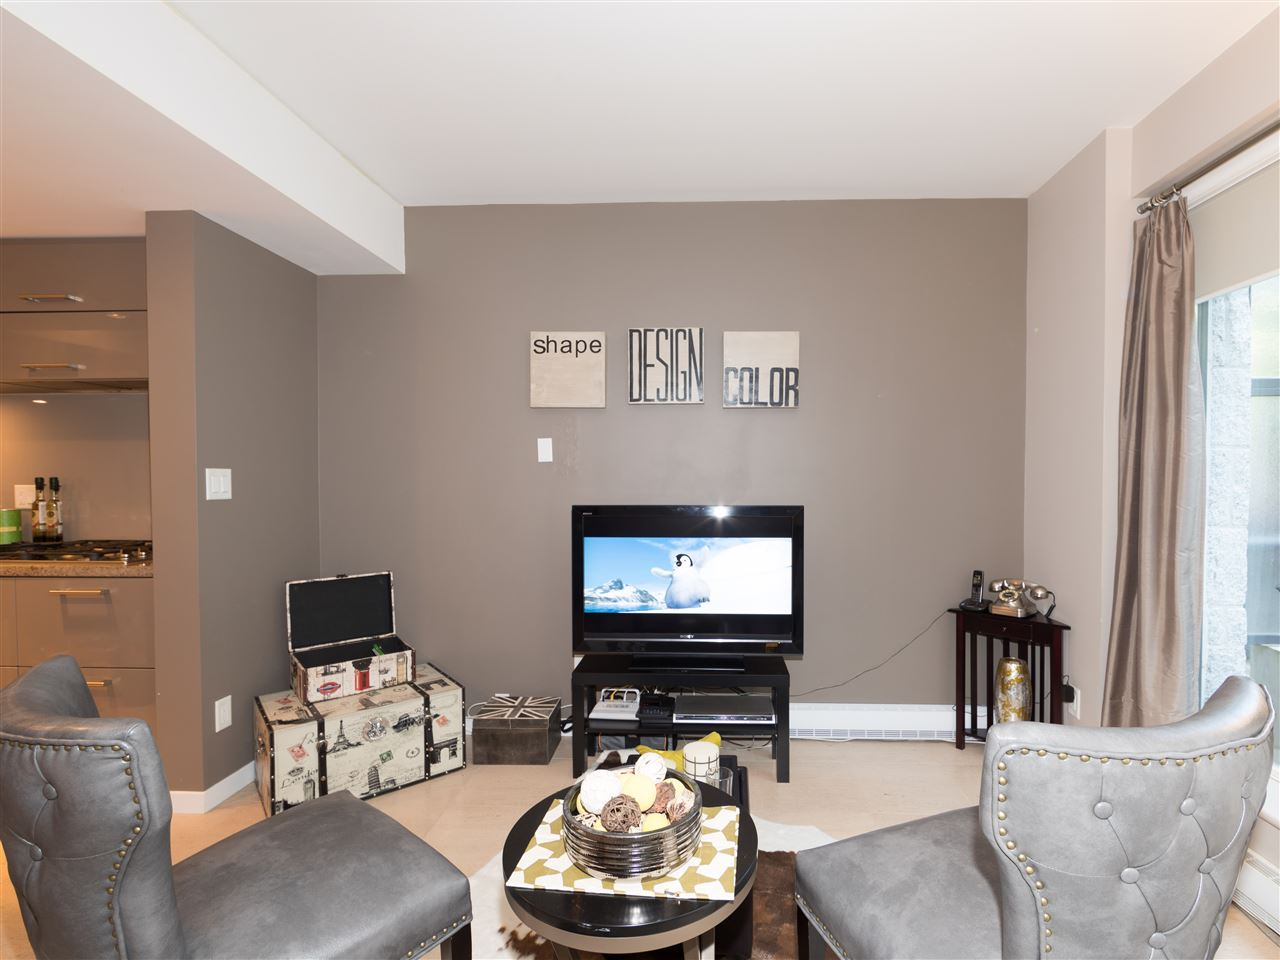 Condo Apartment at TH8 5991 WALTER GAGE ROAD, Unit TH8, Vancouver West, British Columbia. Image 6